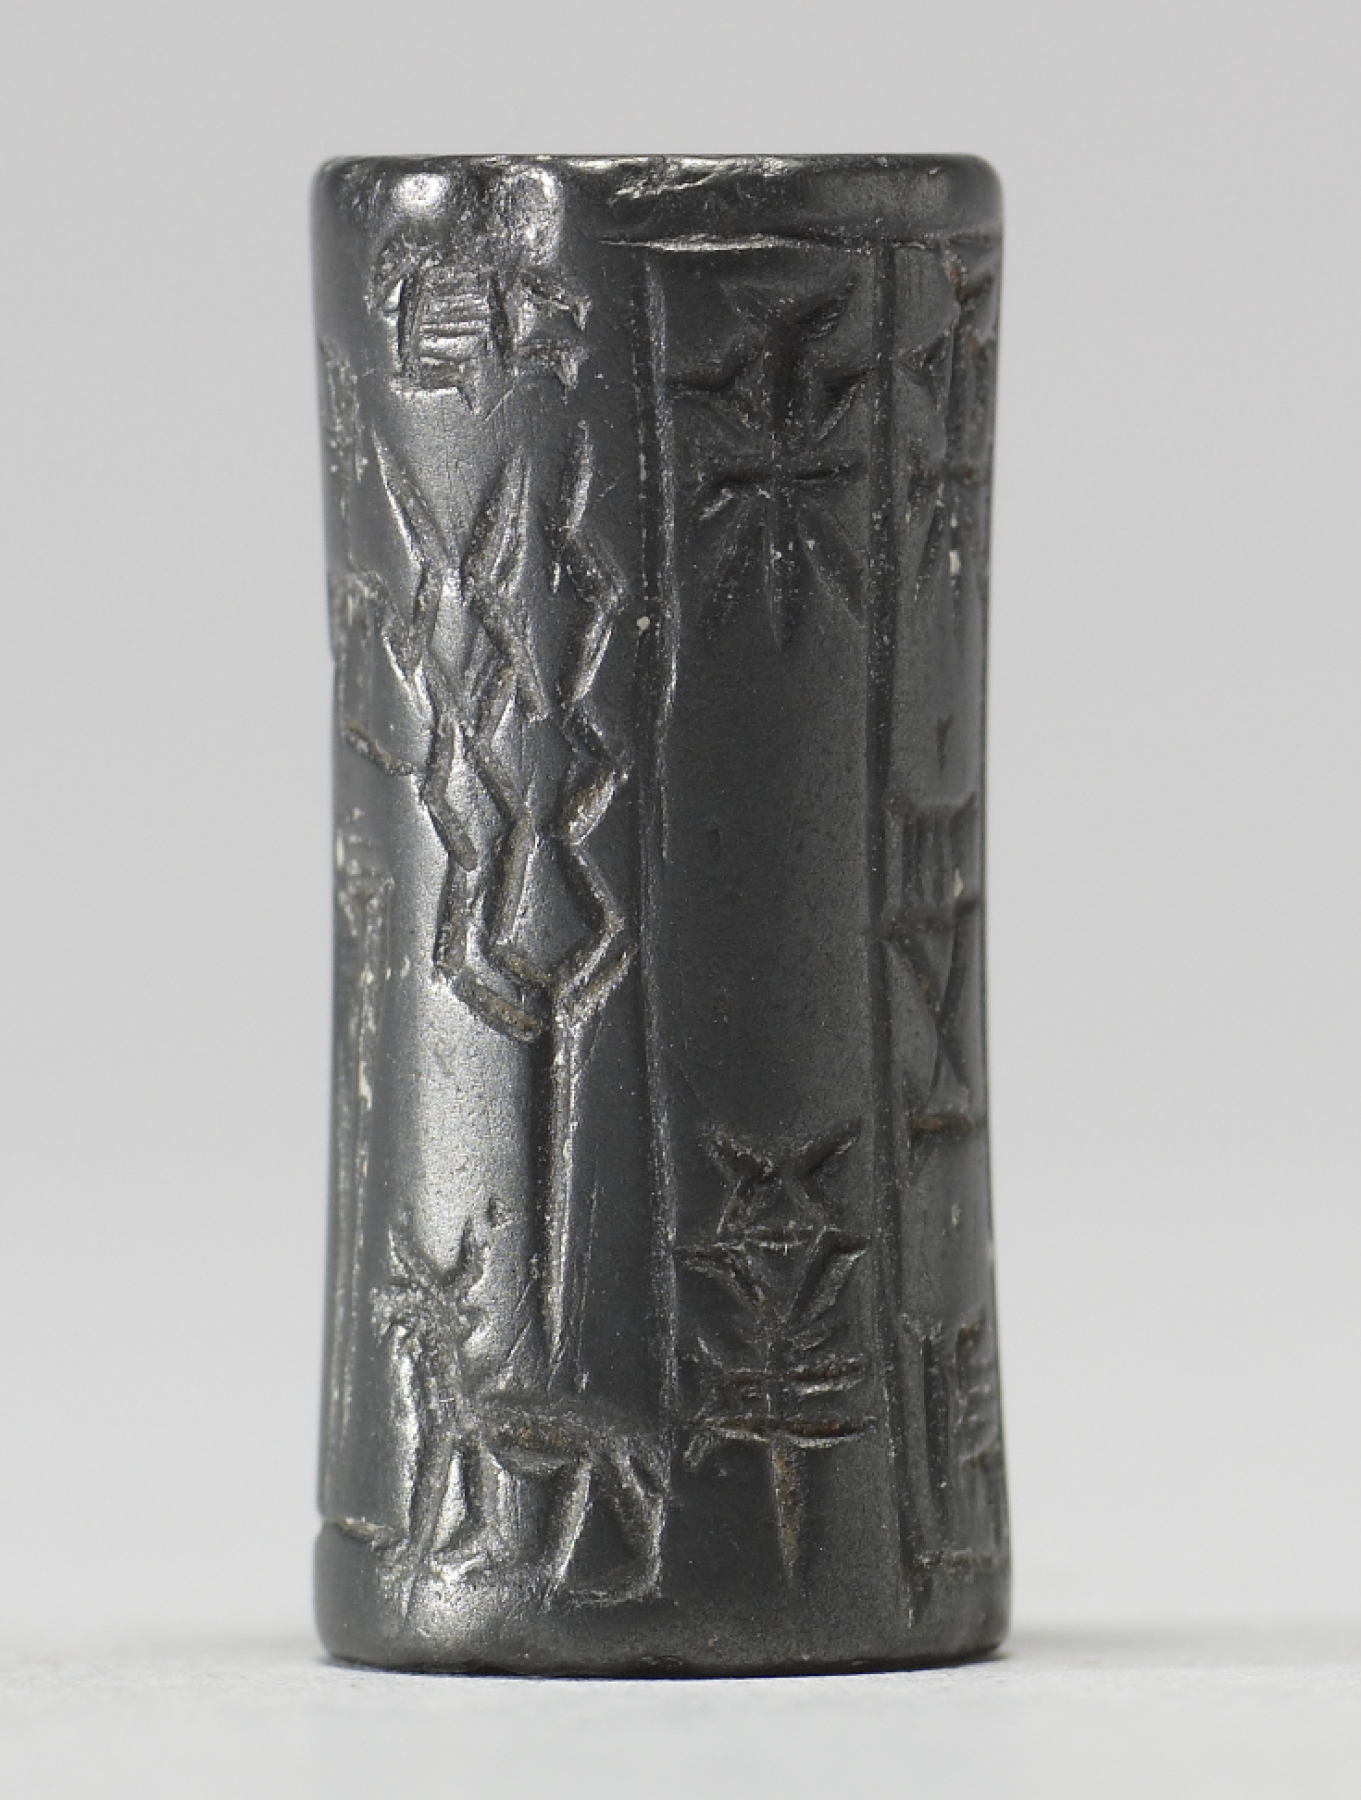 Babylonian_-_Cylinder_Seal_with_Three_Standing_Figures_and_Inscriptions_-_Walters_42692_-_Side_F